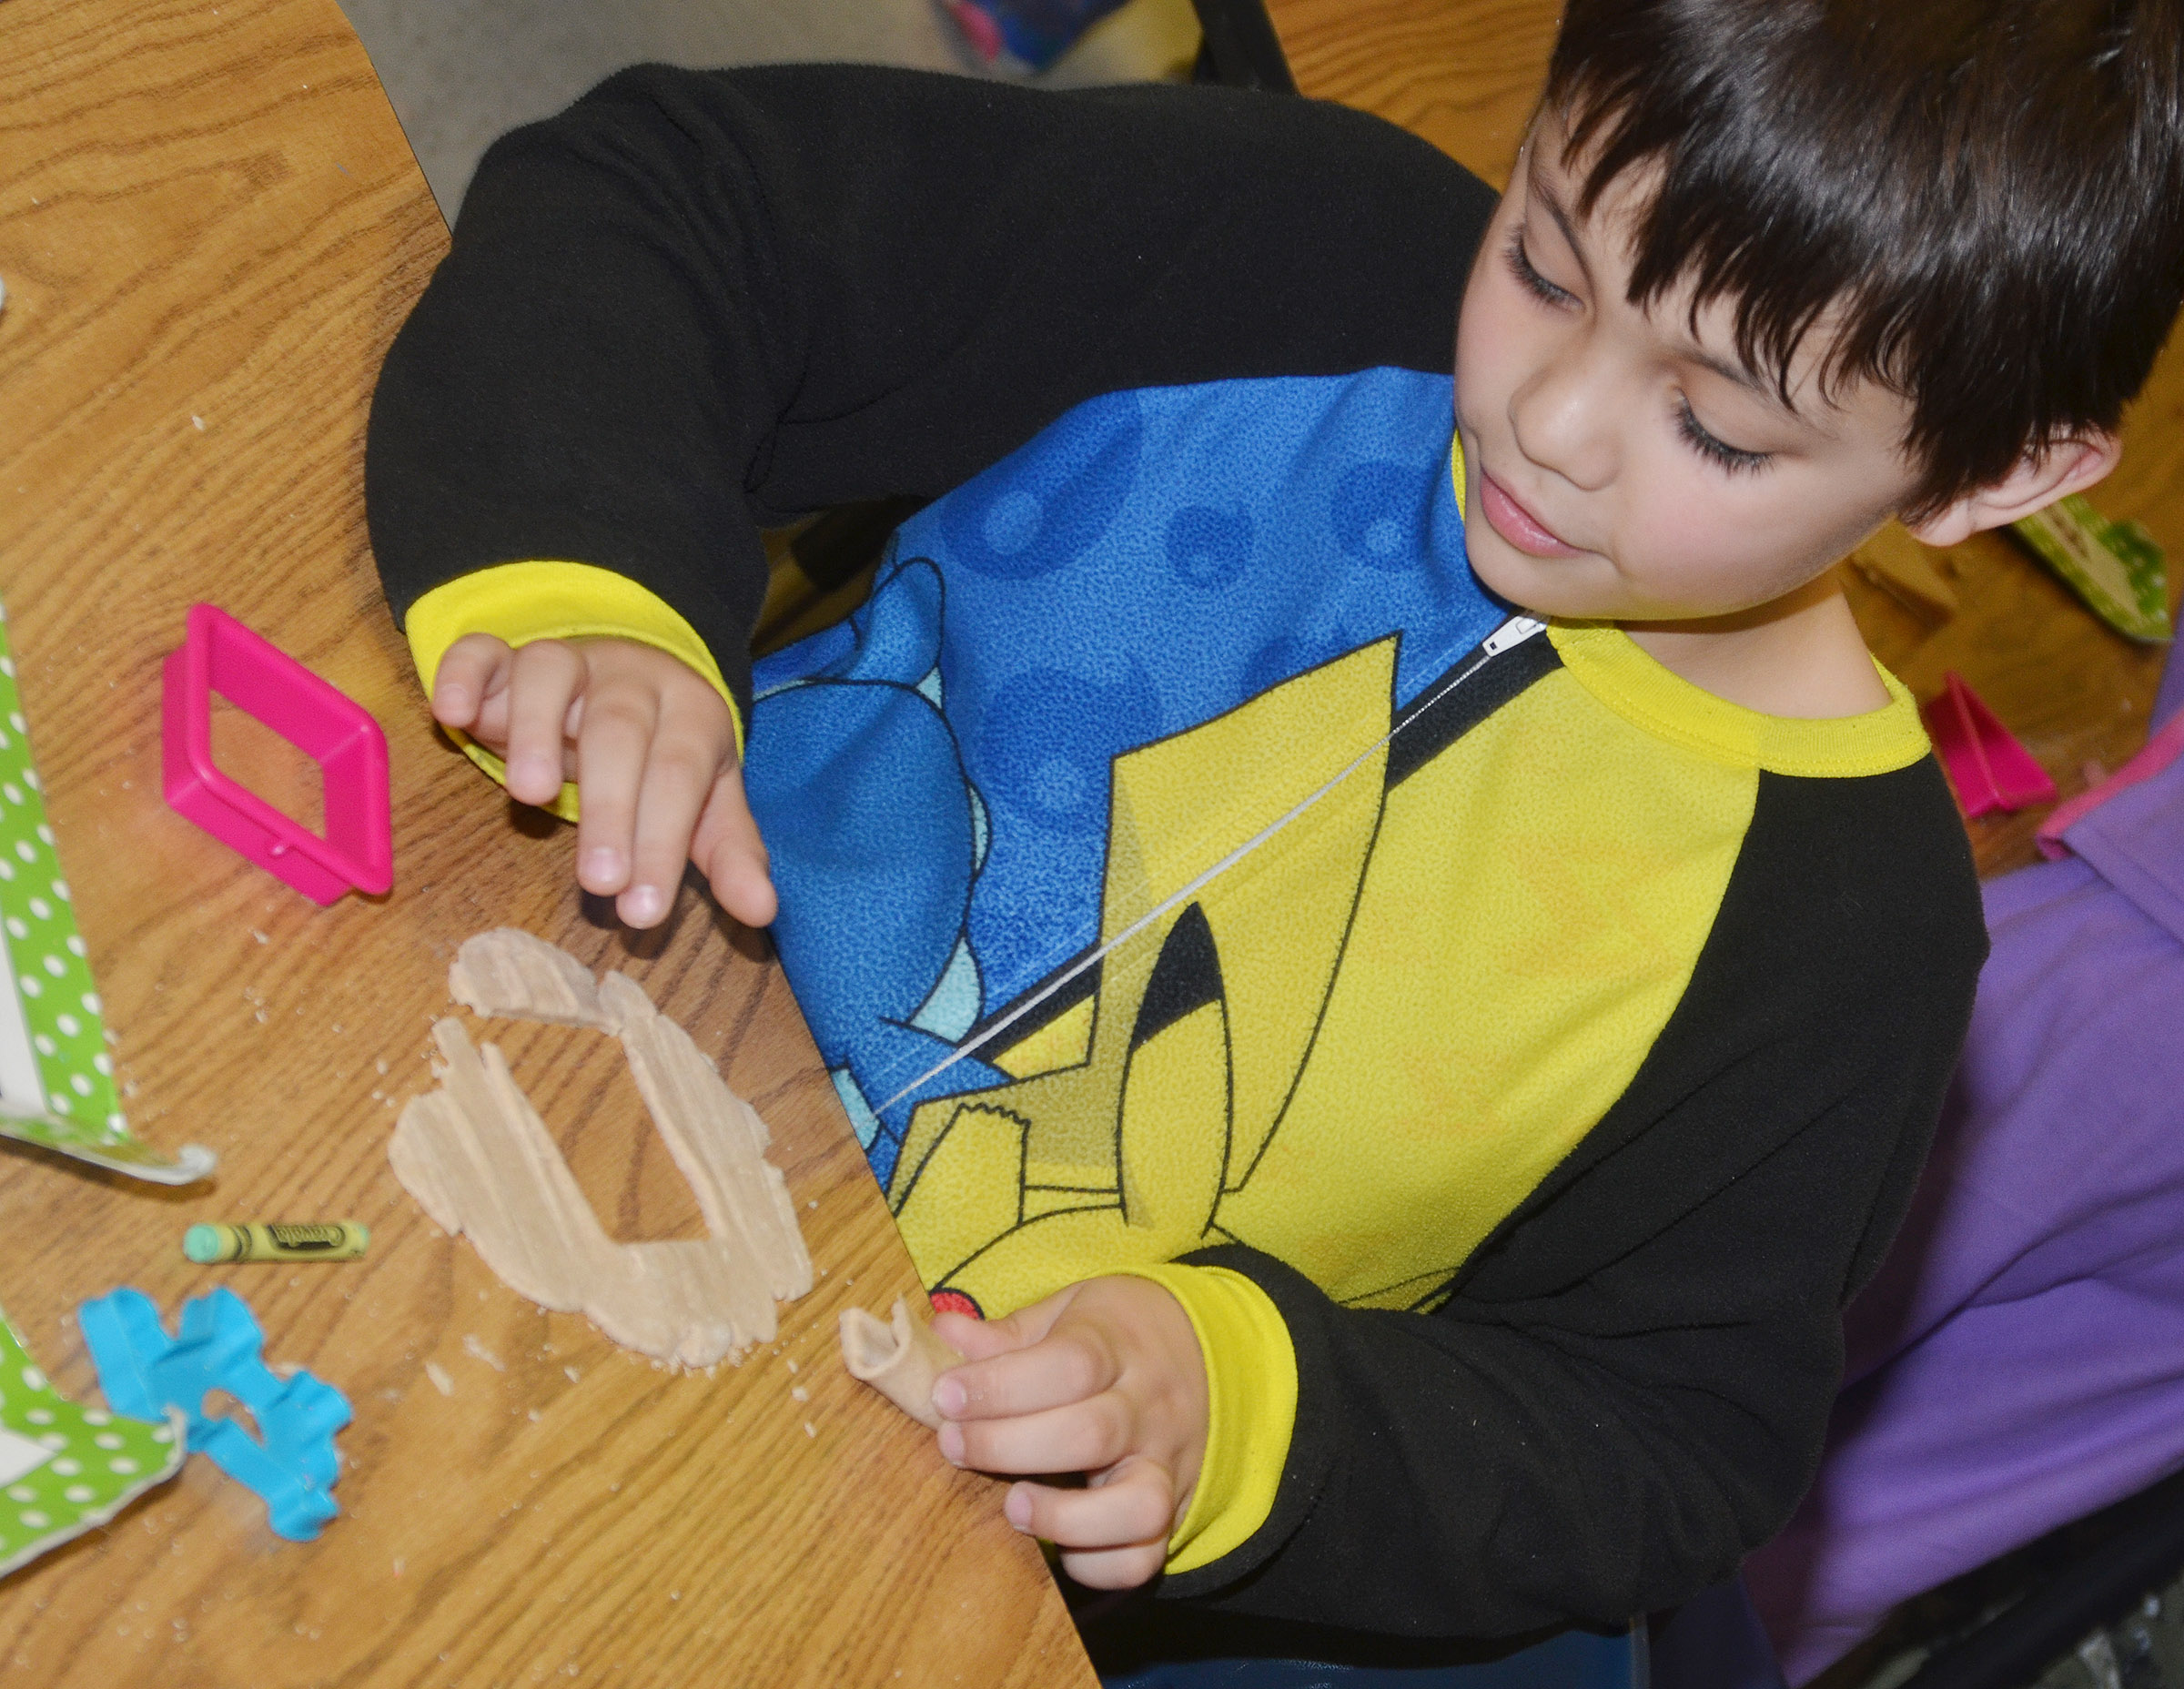 CES first-grader Keagan Shearer plays with Play-Doh.